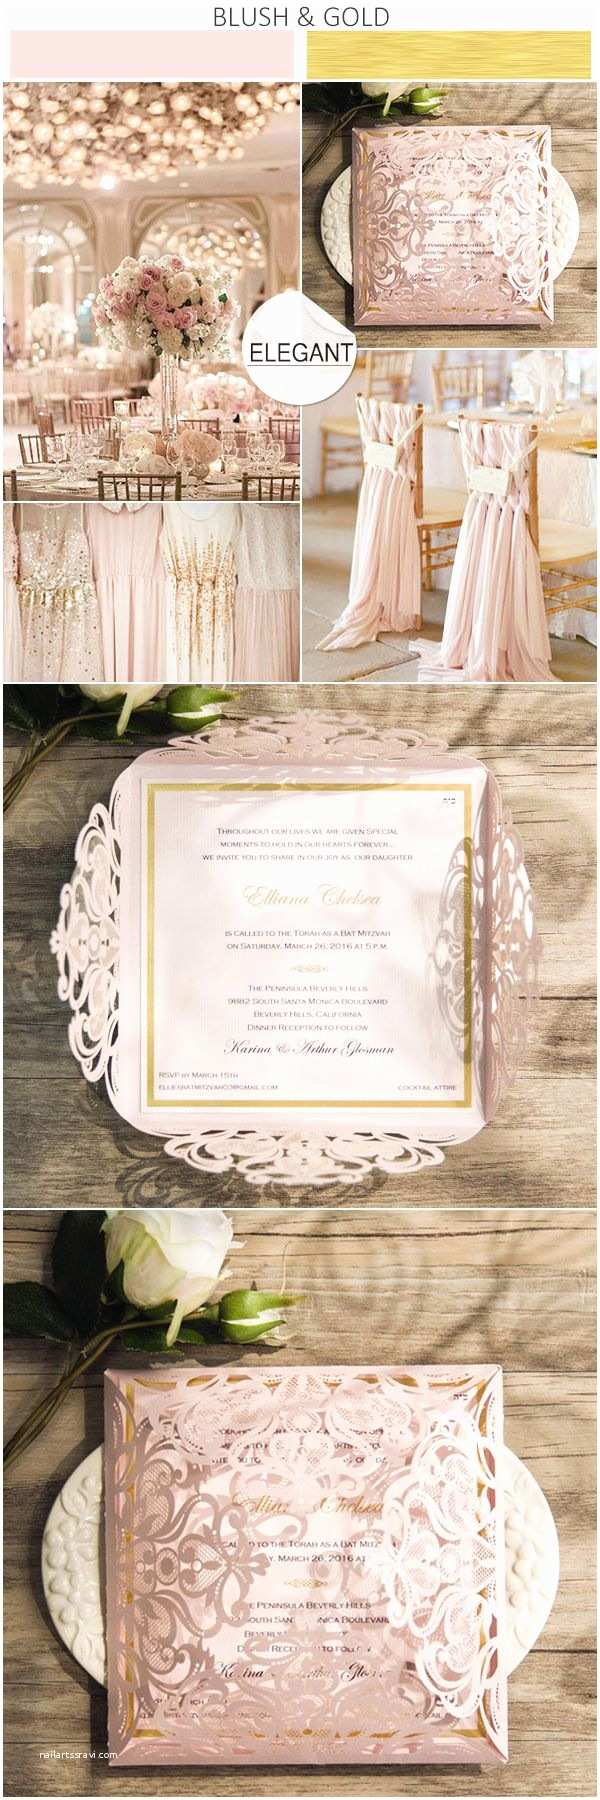 Blush and Gold Wedding Invitations Romantic Blush Pink Laser Cut Gold Foil Stamped Wedding